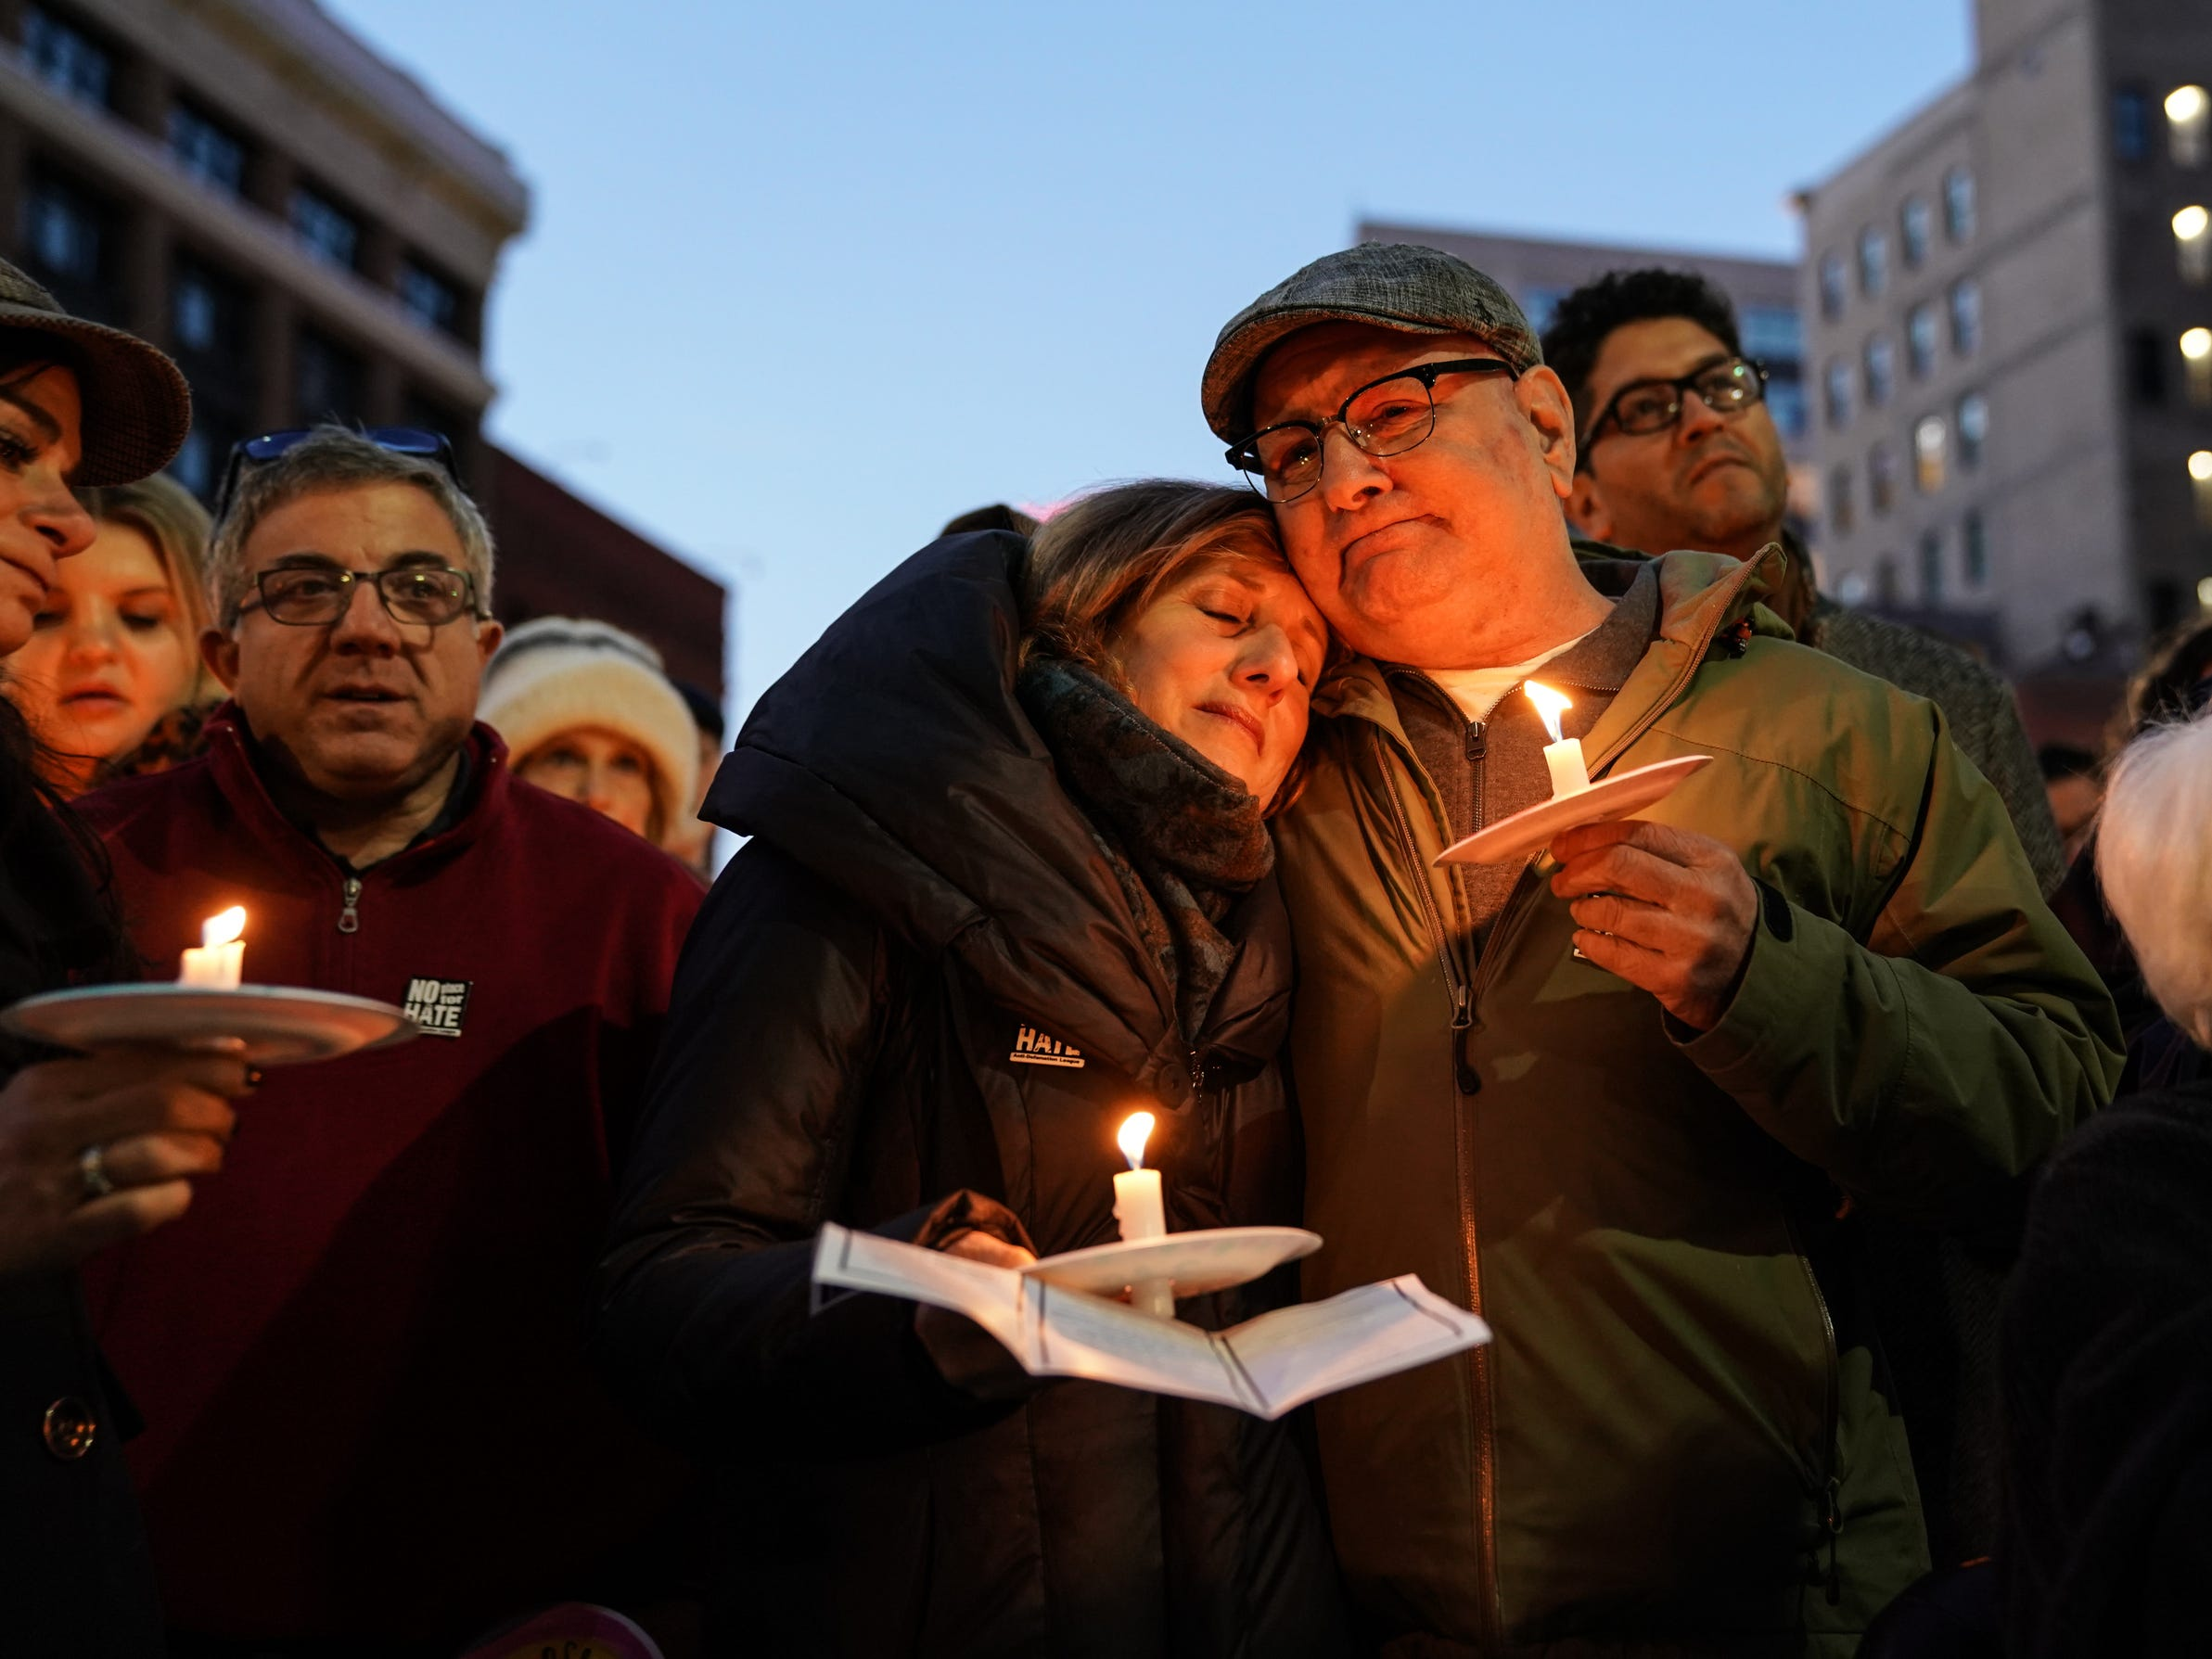 Shelly Podolsky is held by her husband Arnold Podolsky both of Huntington Woods while listening to a speaker during a vigil for the shooting victims killed inside the Tree of Life synagogue in Pittsburgh on Monday, October 29, 2018 at Capitol Park in downtown Detroit.